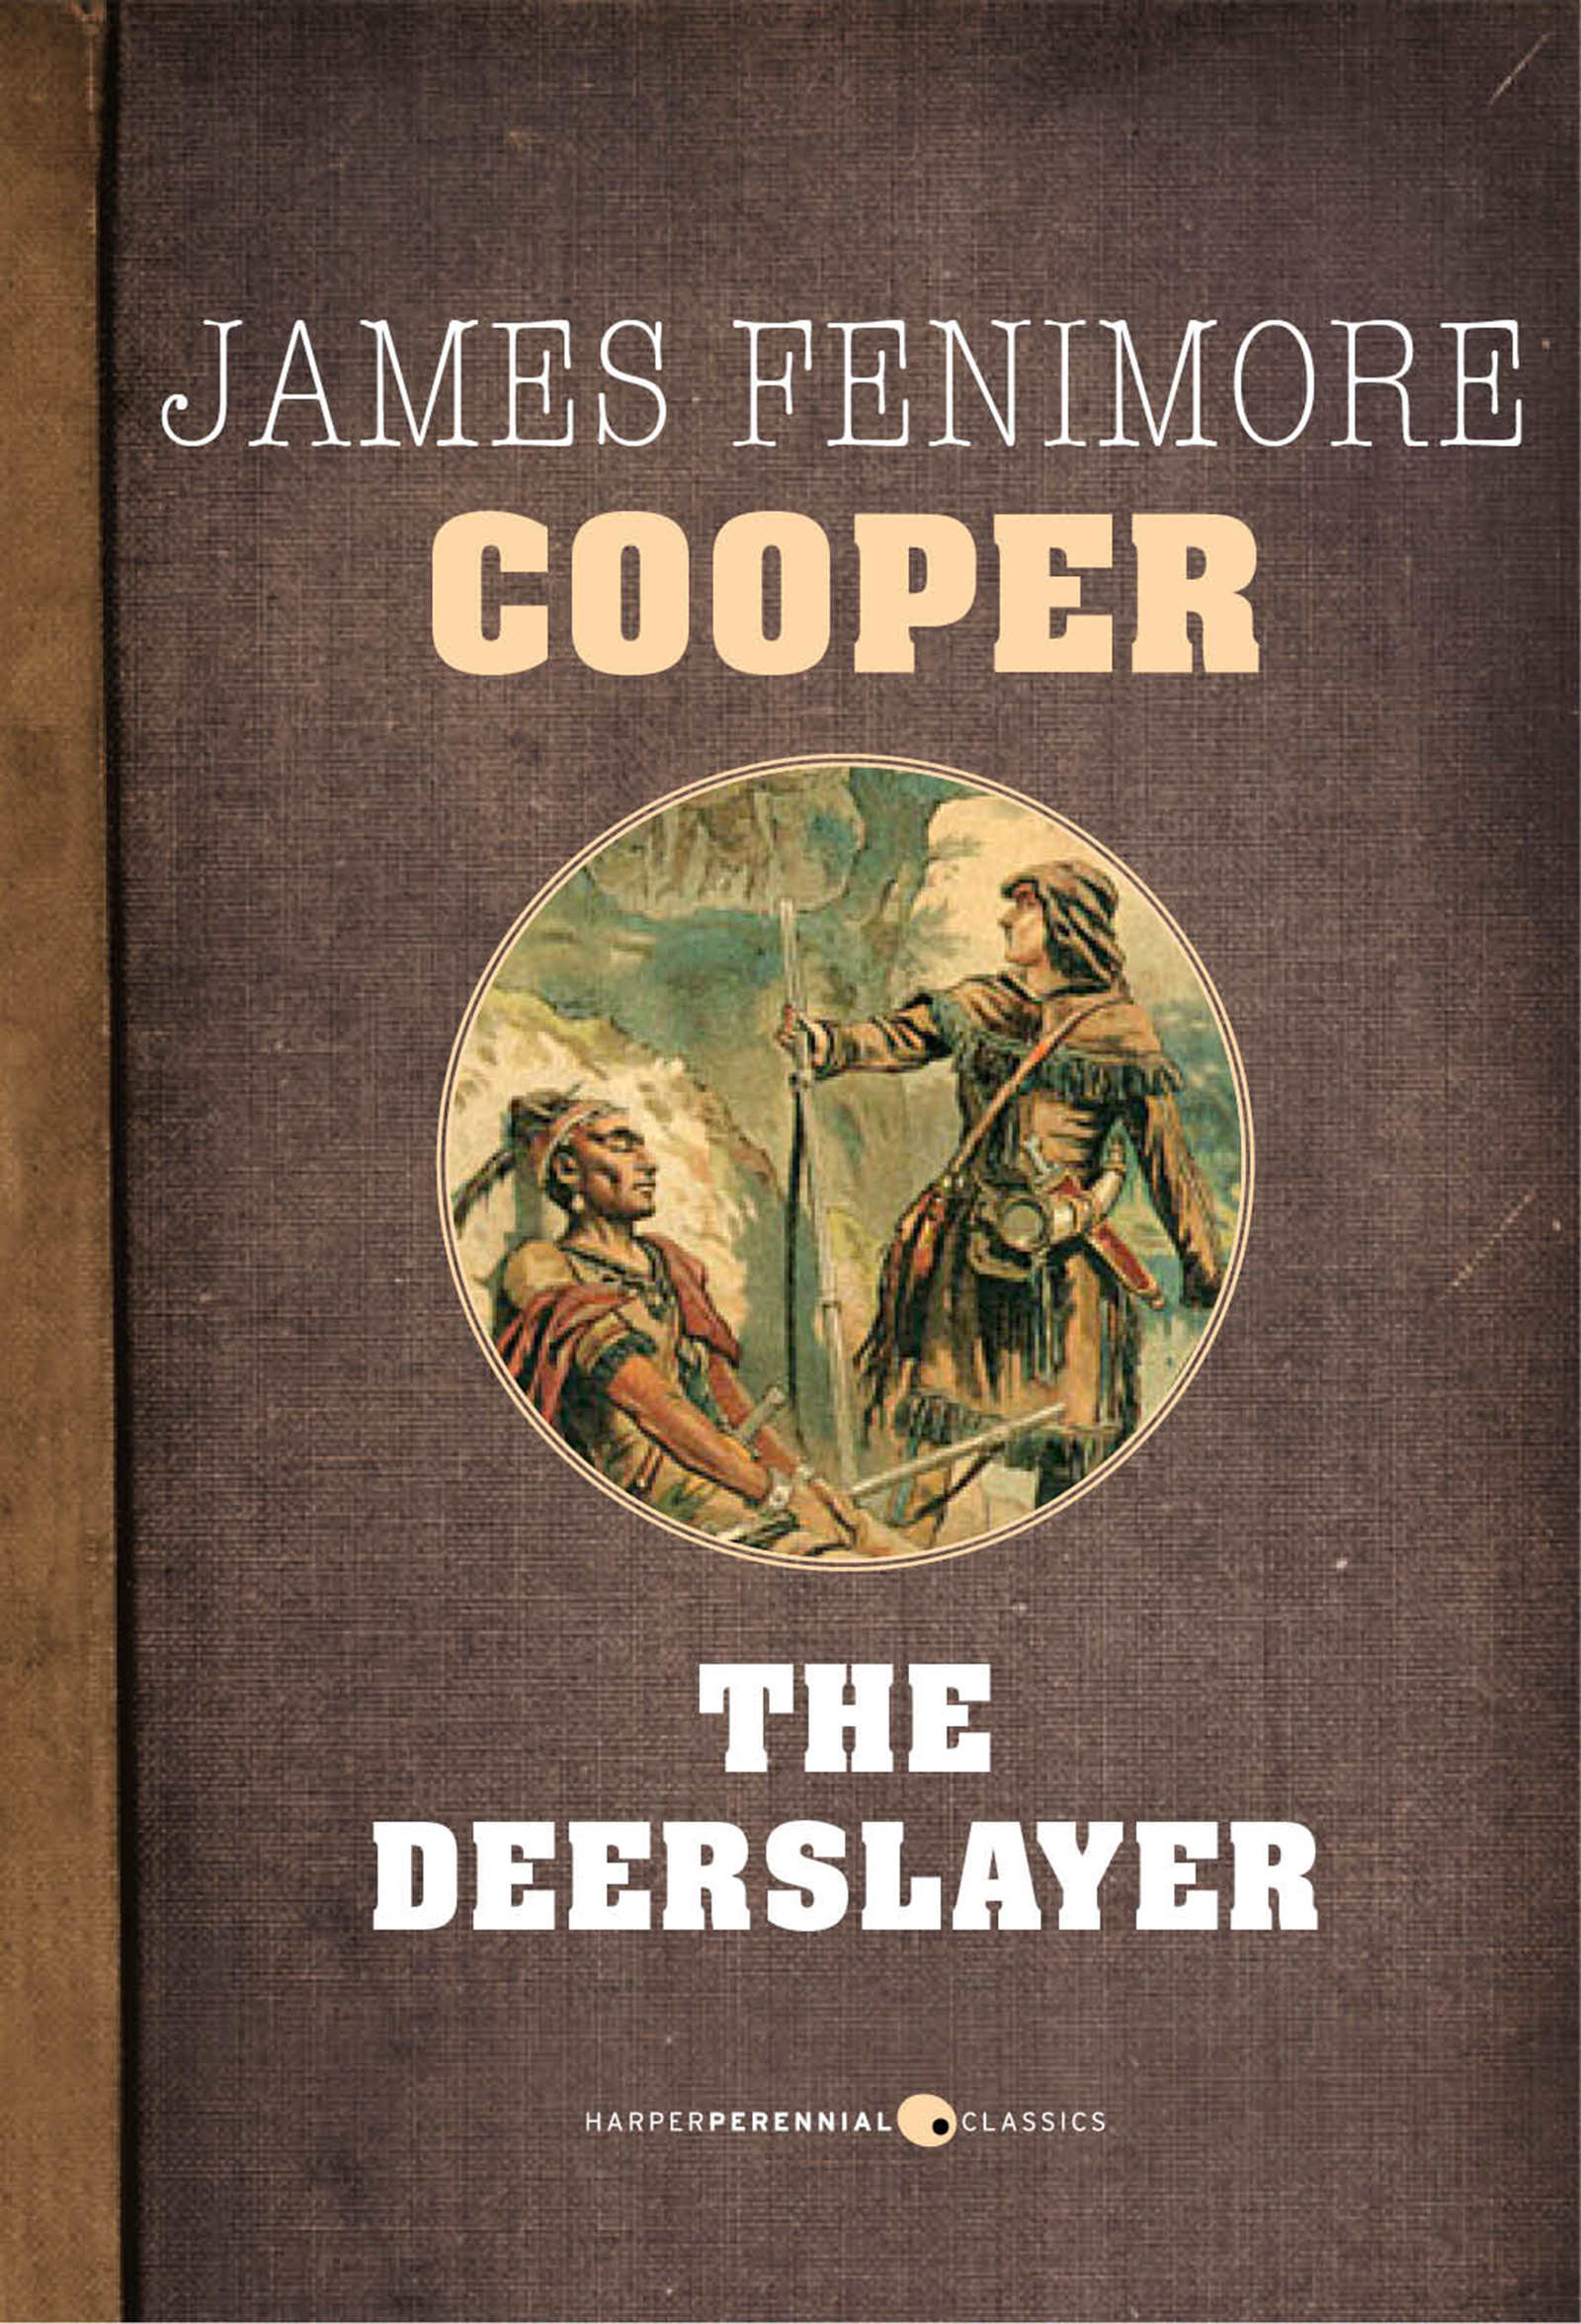 a comparison between judith and hetty in james fenimore coopers the deerslayer Home / blog / mark twain's criticism of james fenimore cooper judith and hetty critique, deerslayer, fenimore cooper.